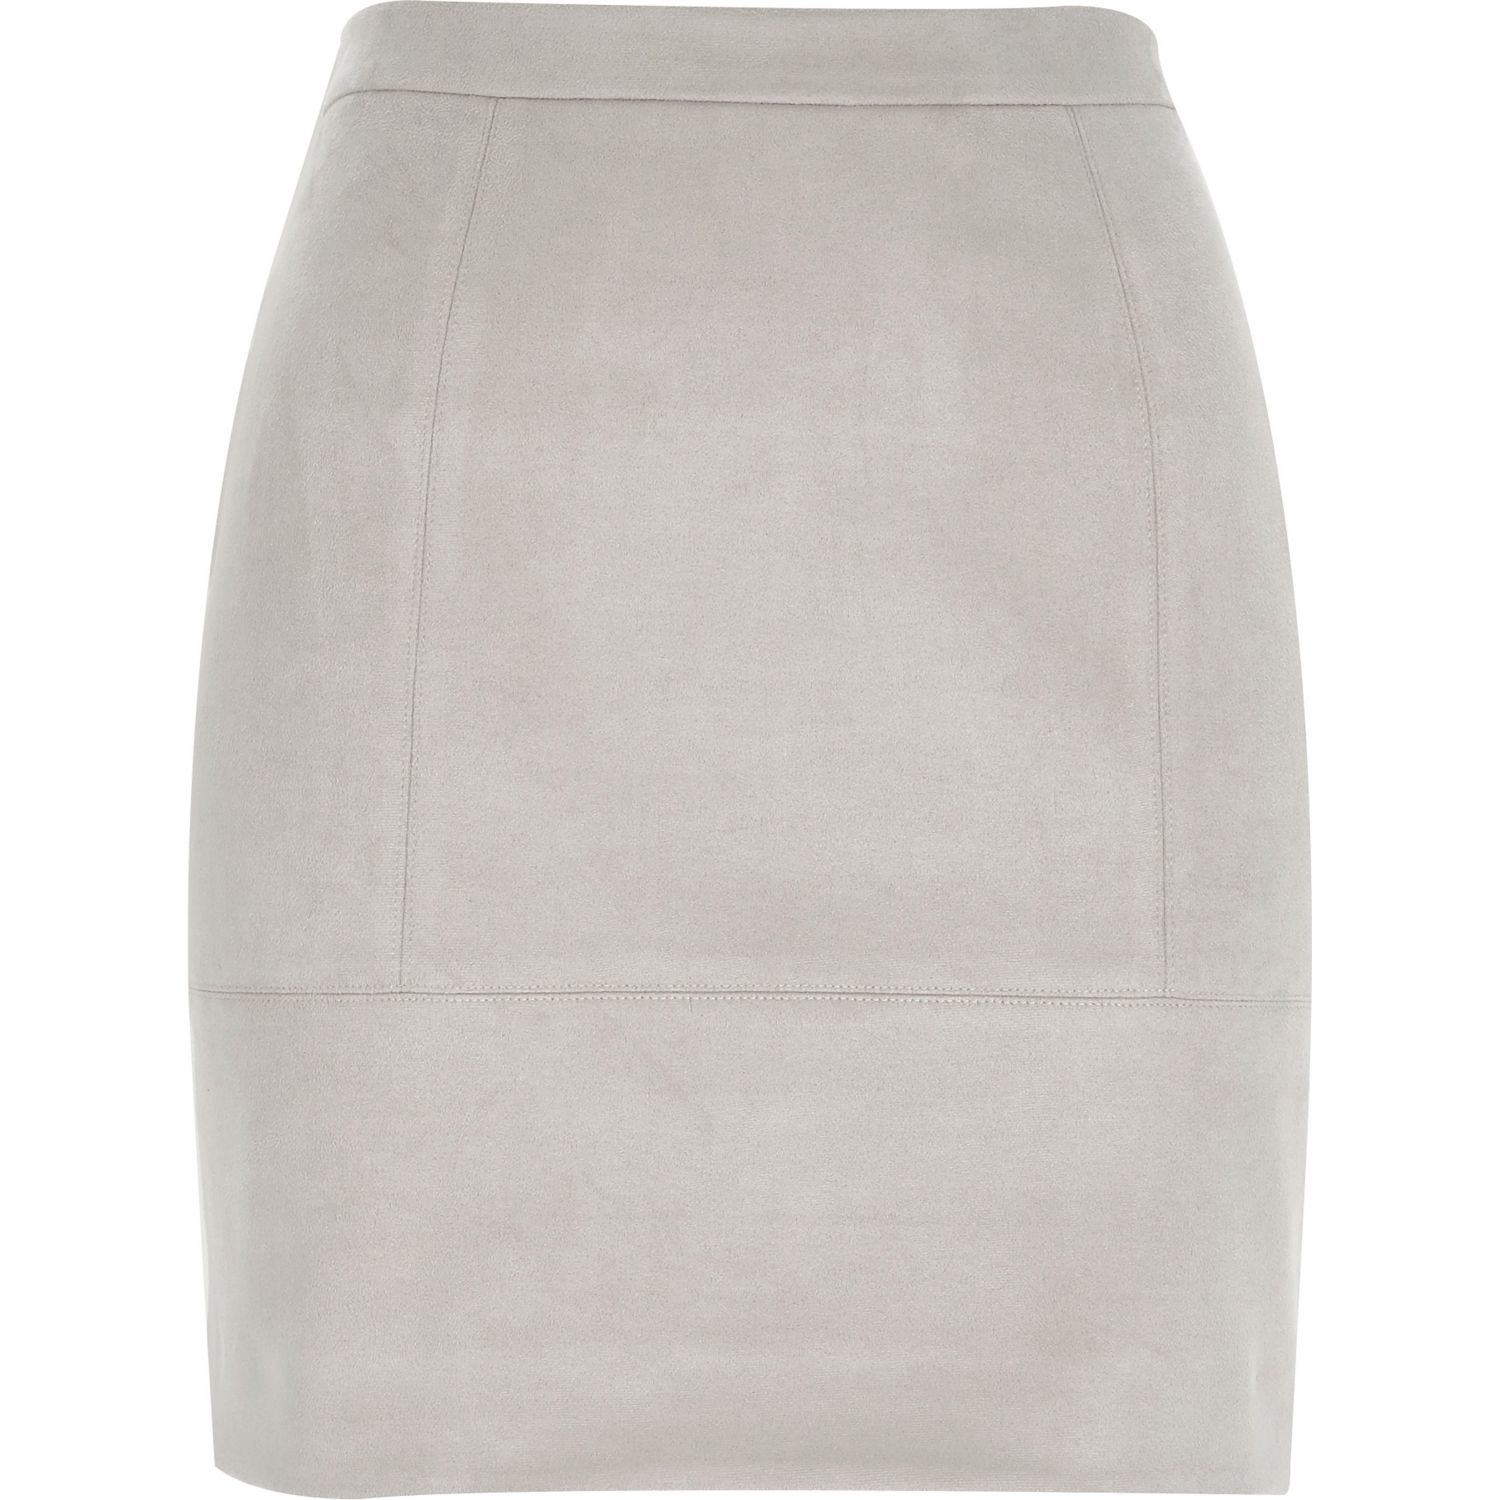 River island Grey Faux Suede A-line Skirt in Gray | Lyst